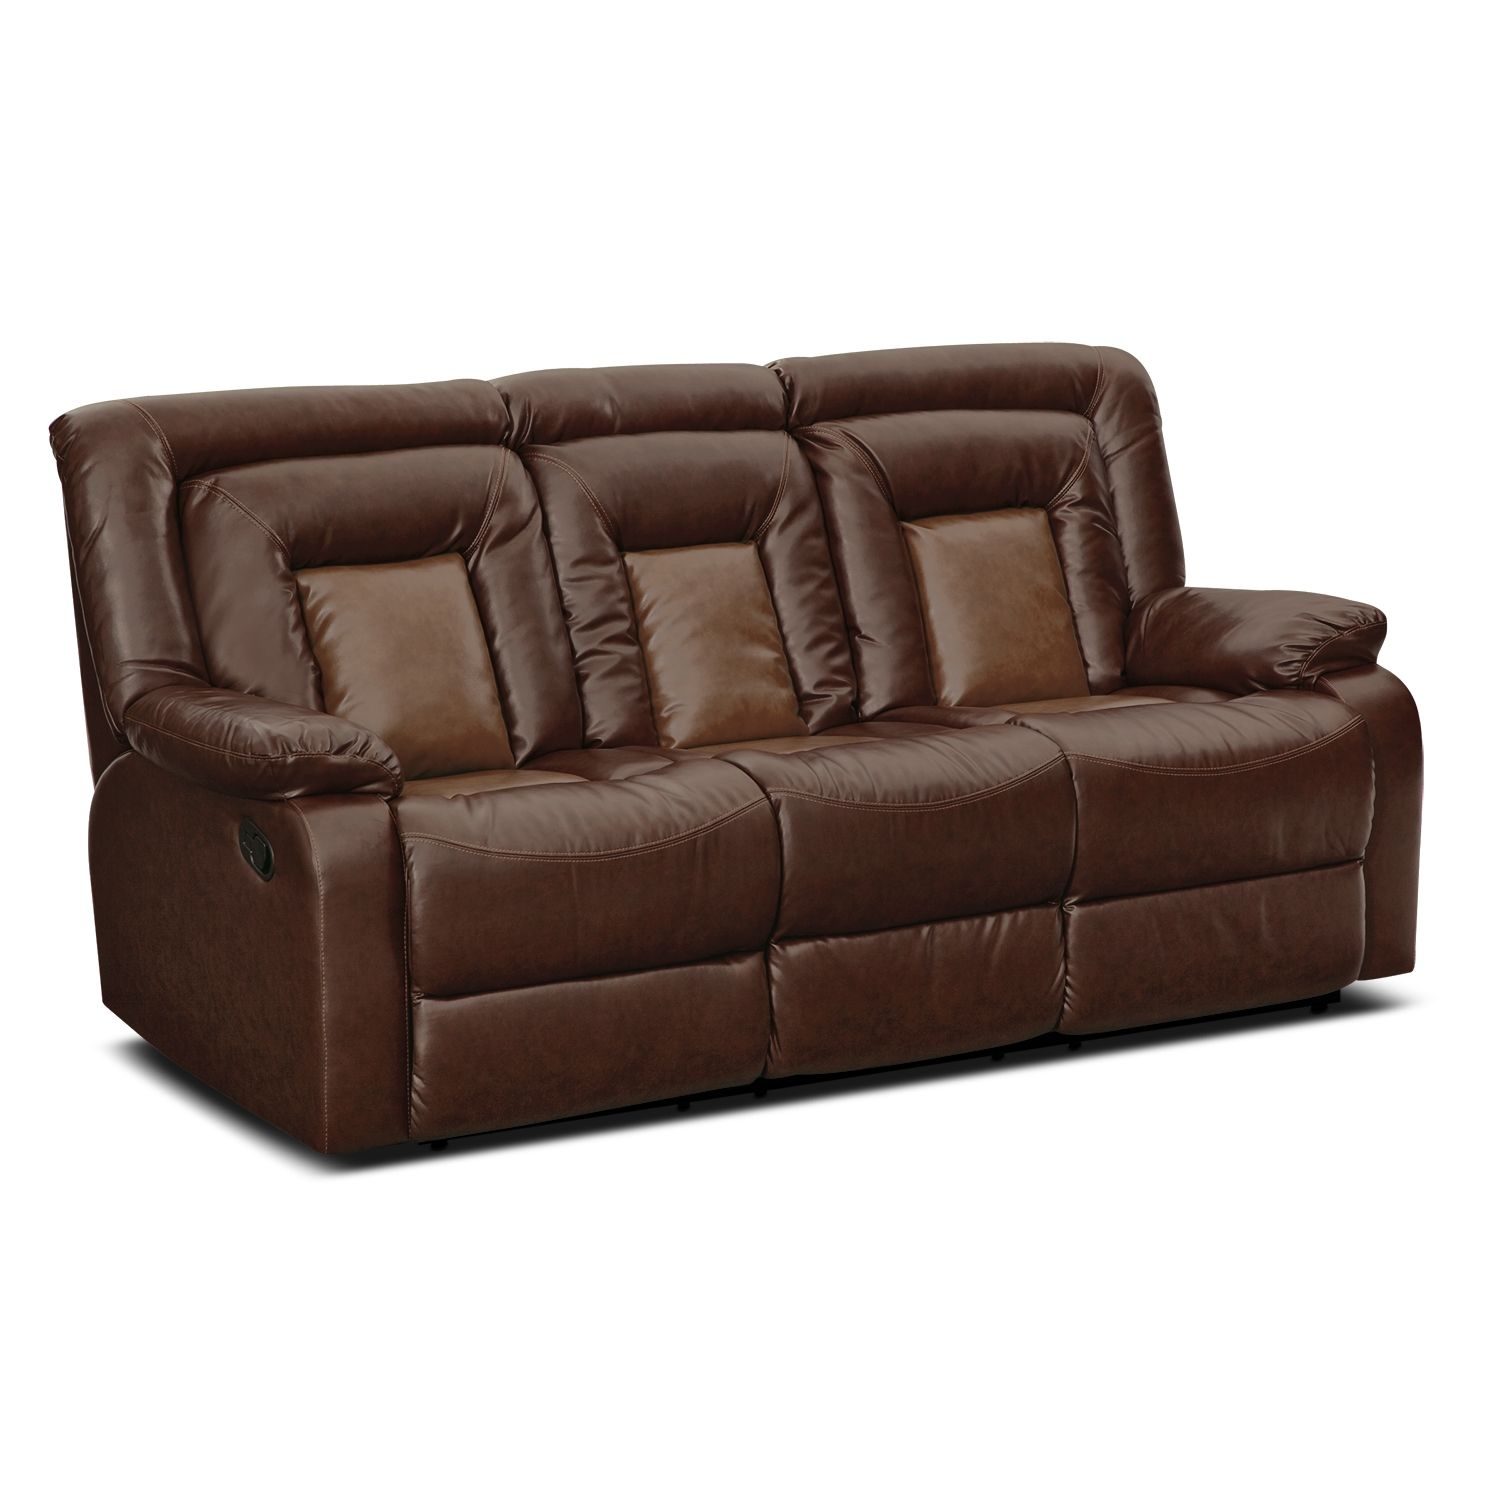 Top best reclining sofa sets ultimate buying guide reclining